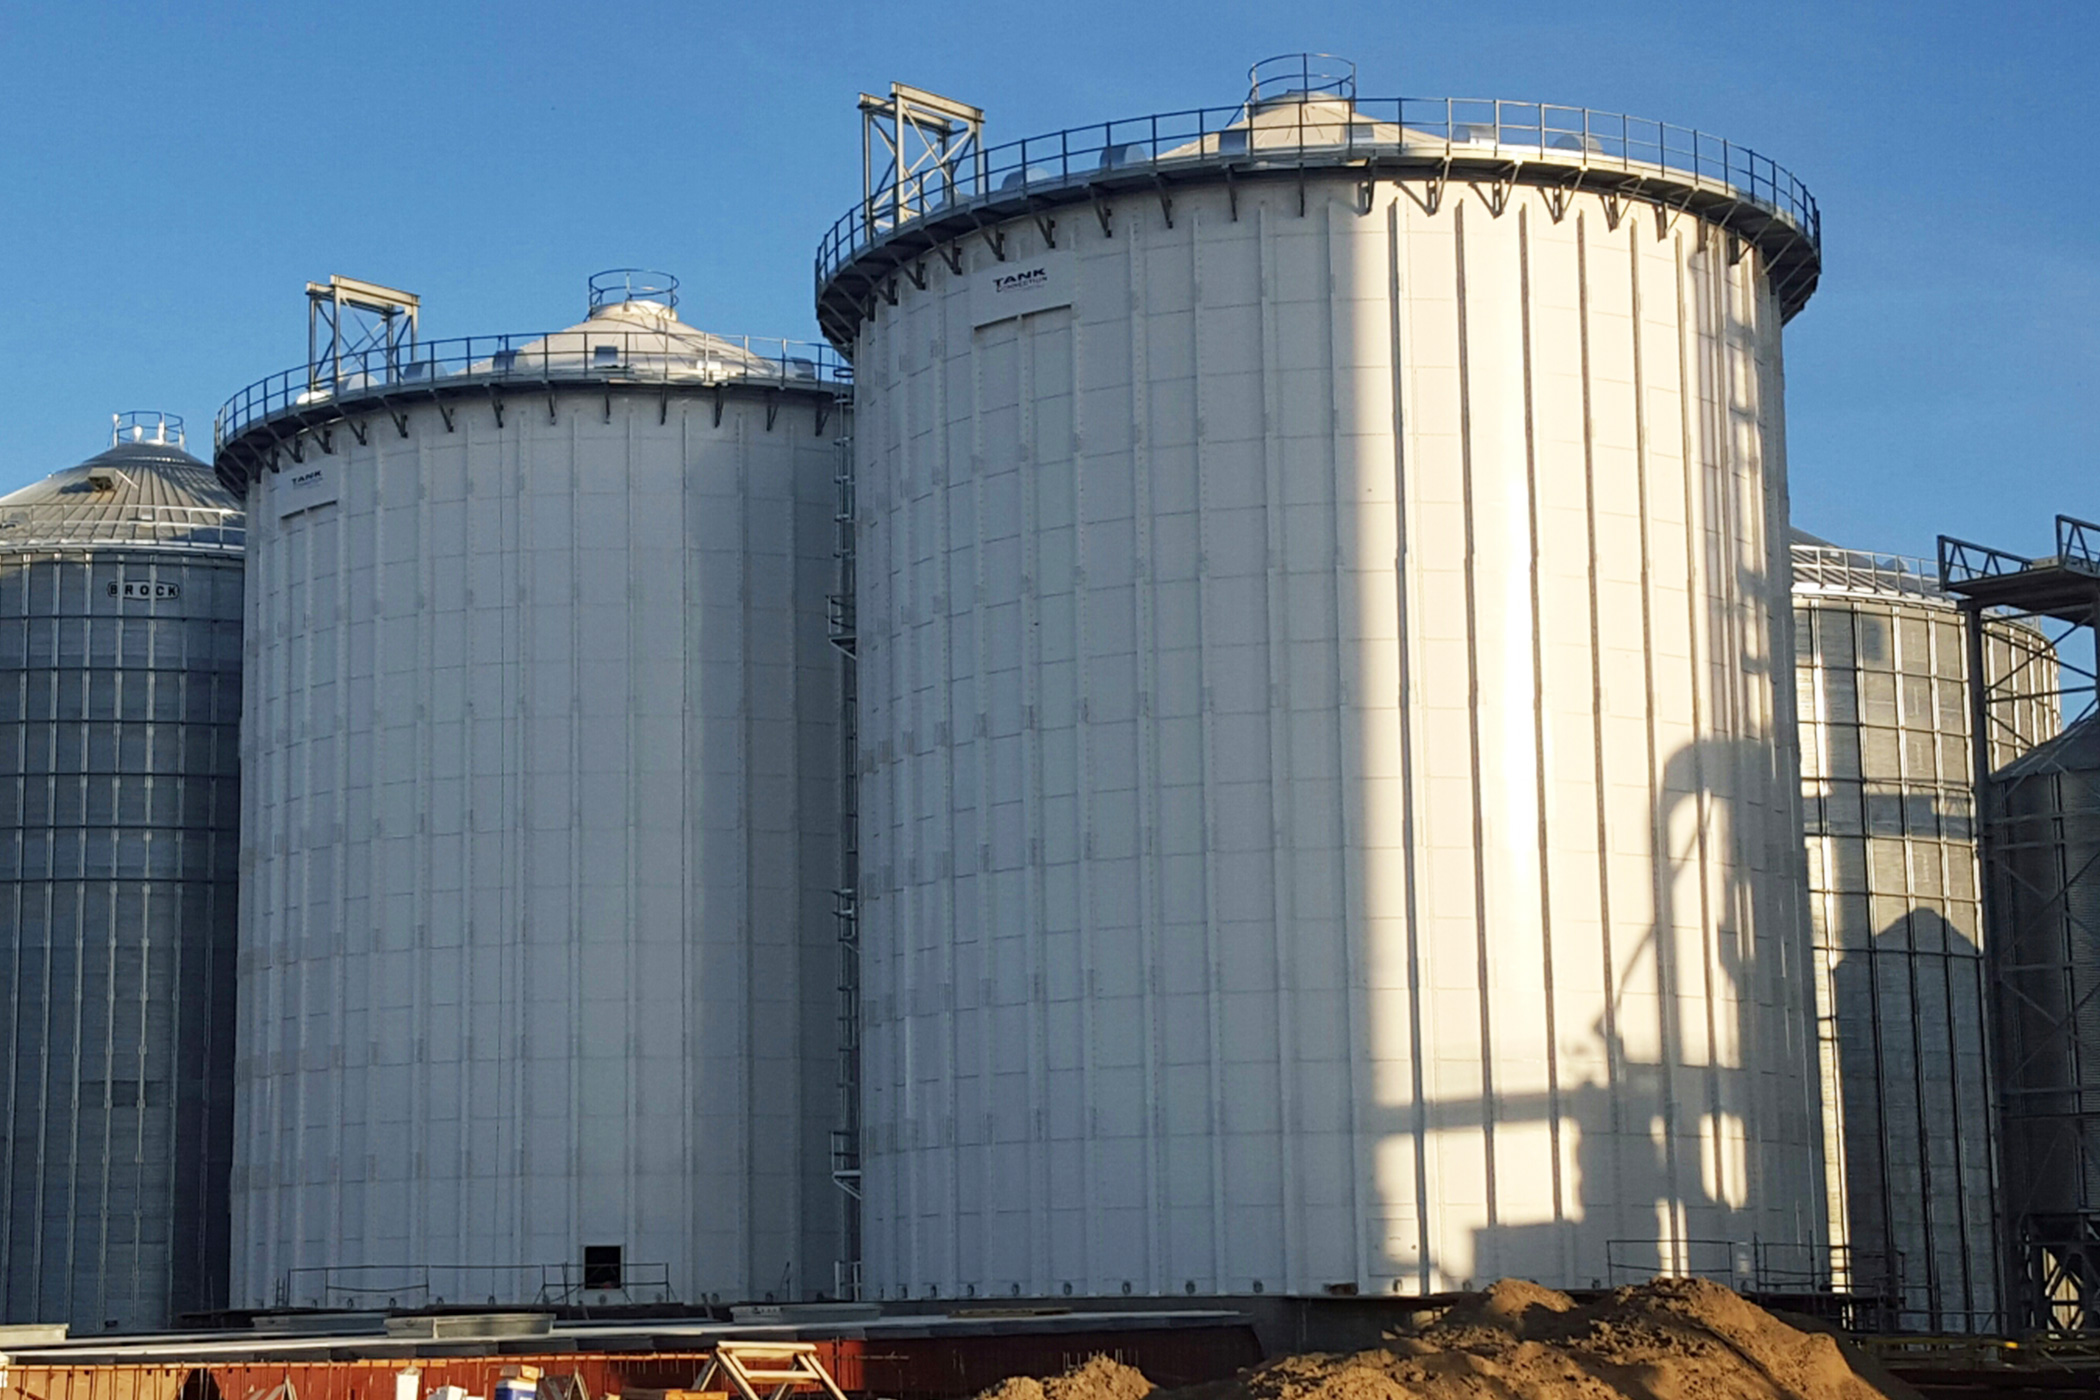 Bolted RTP soybean meal storage tanks